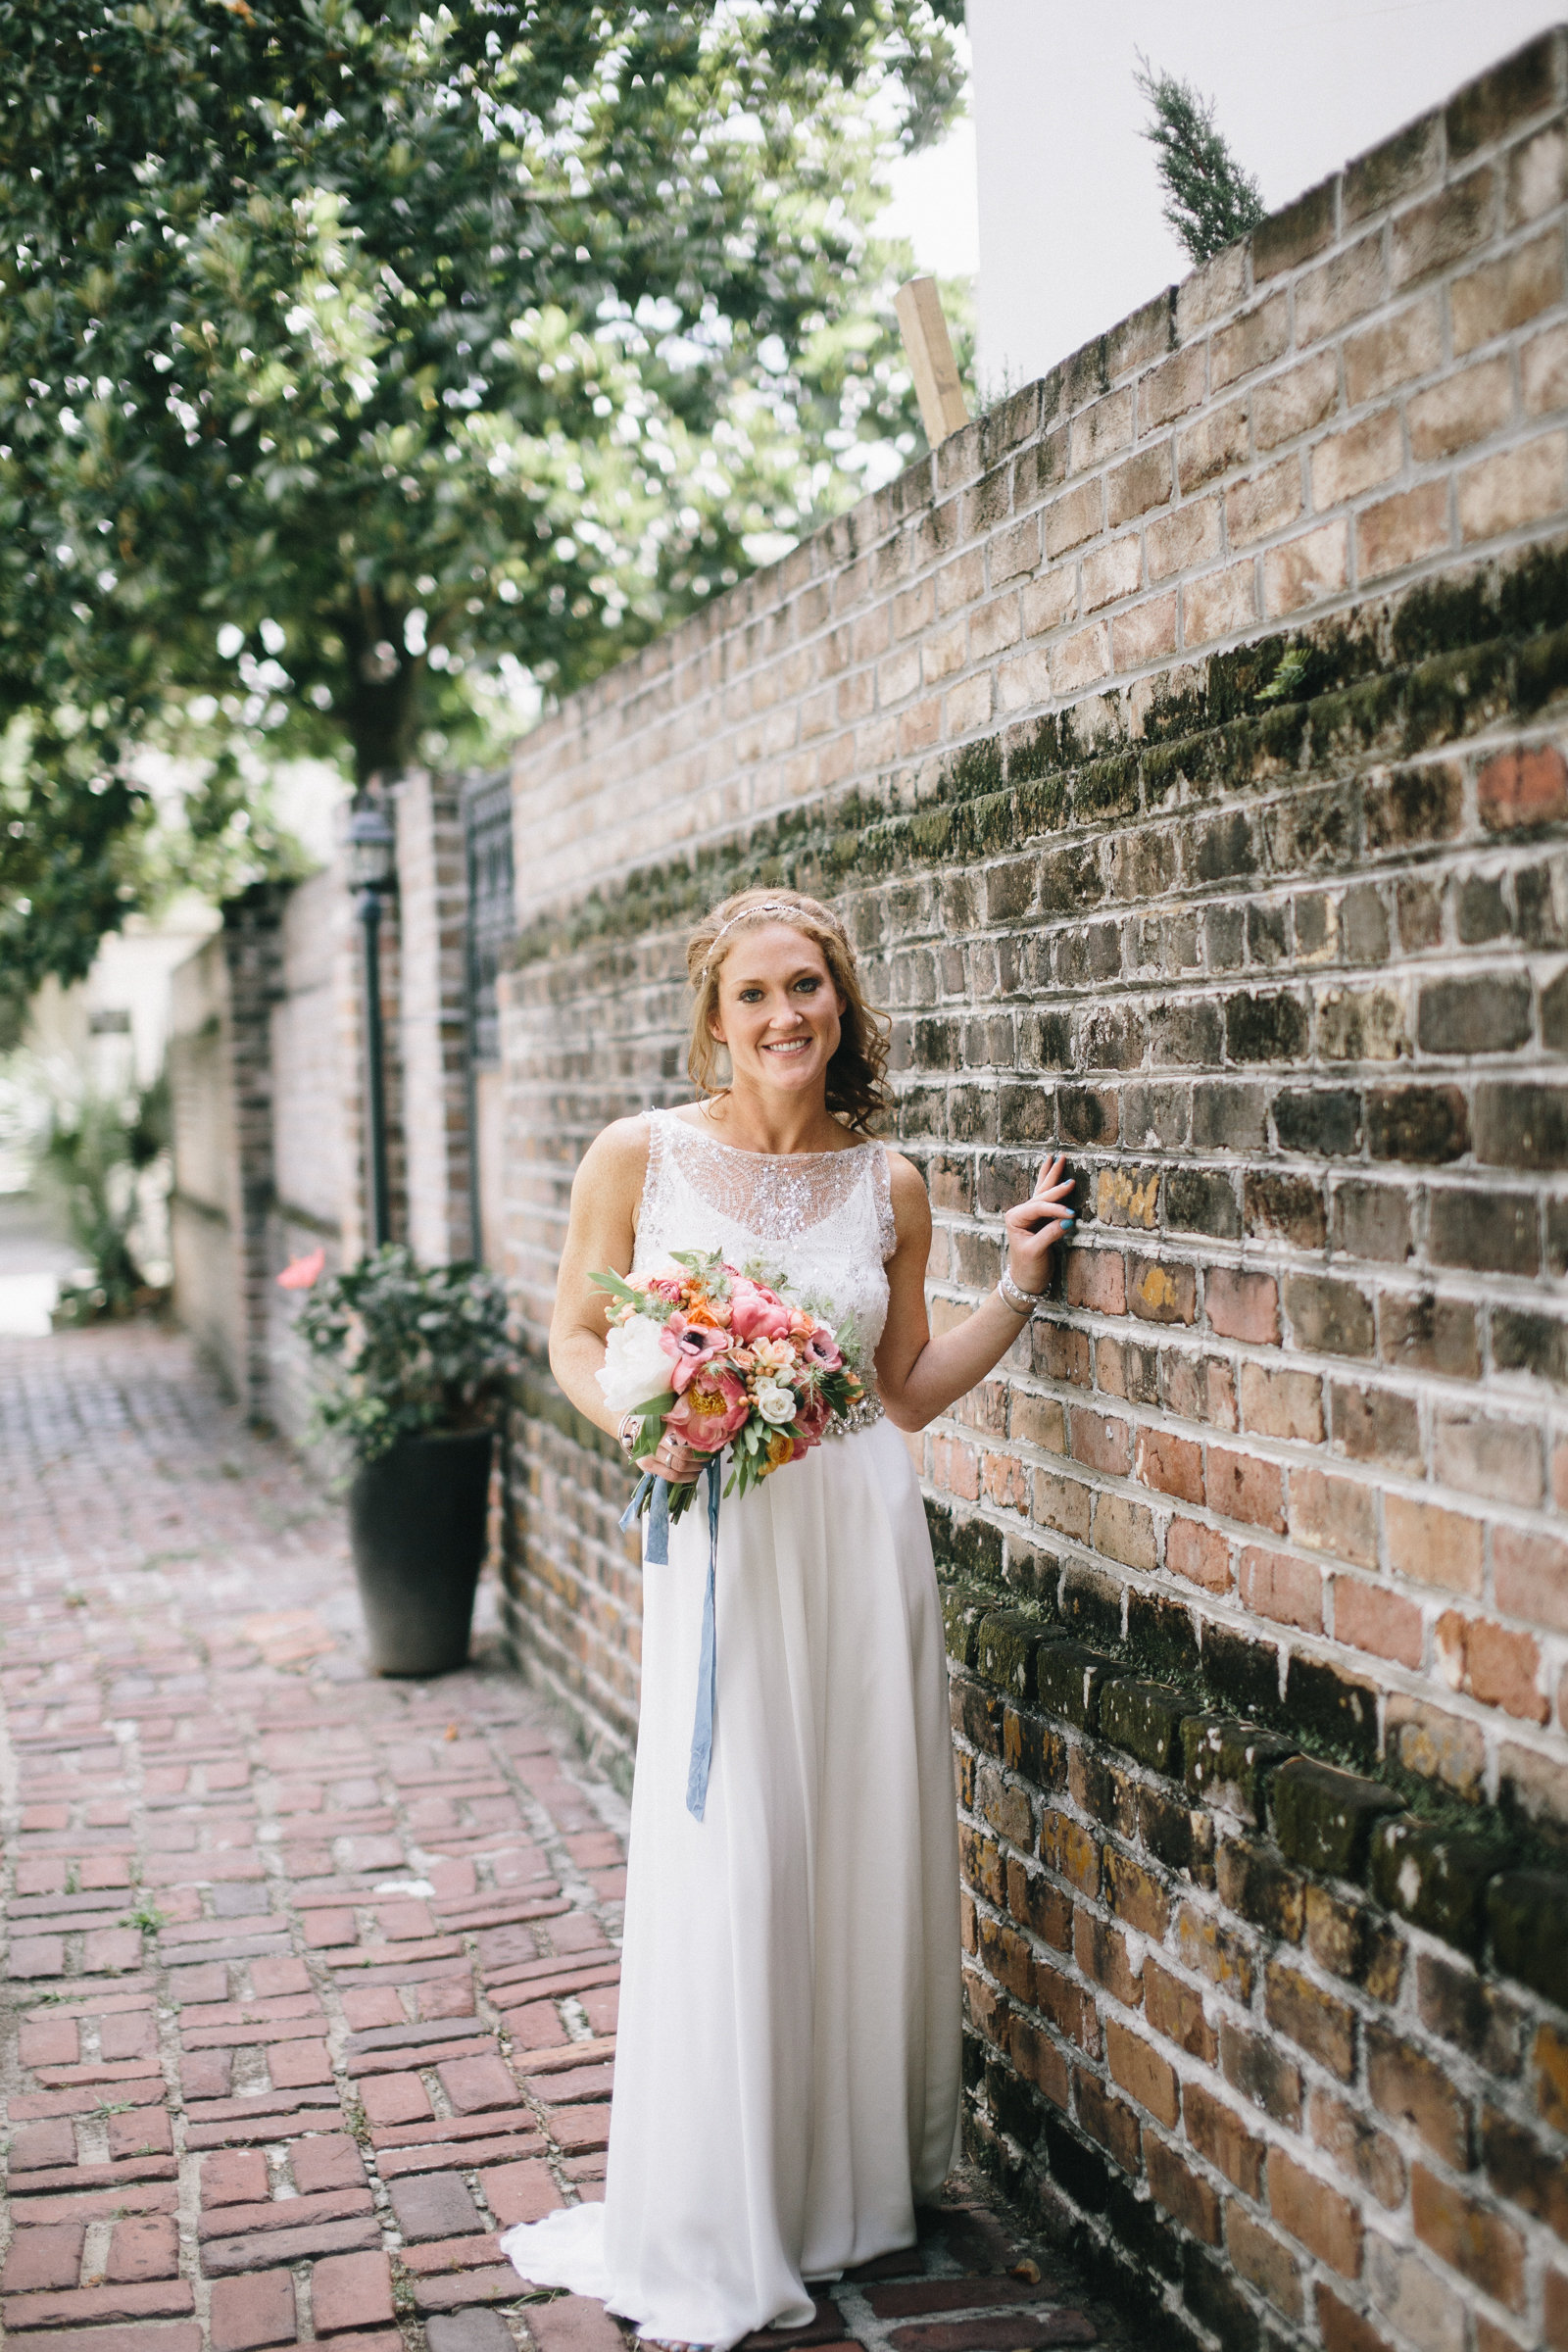 mackensey-alexander-photography-ivory-and-beau-bridal-boutique-from-this-day-forward-wedding-planning-sarah-seven-gwen-savannah-bridal-boutique-savannah-wedding-dresses-savannah-bridal-boutique-savannah-wedding-planner-savannah-weddings-23.jpg